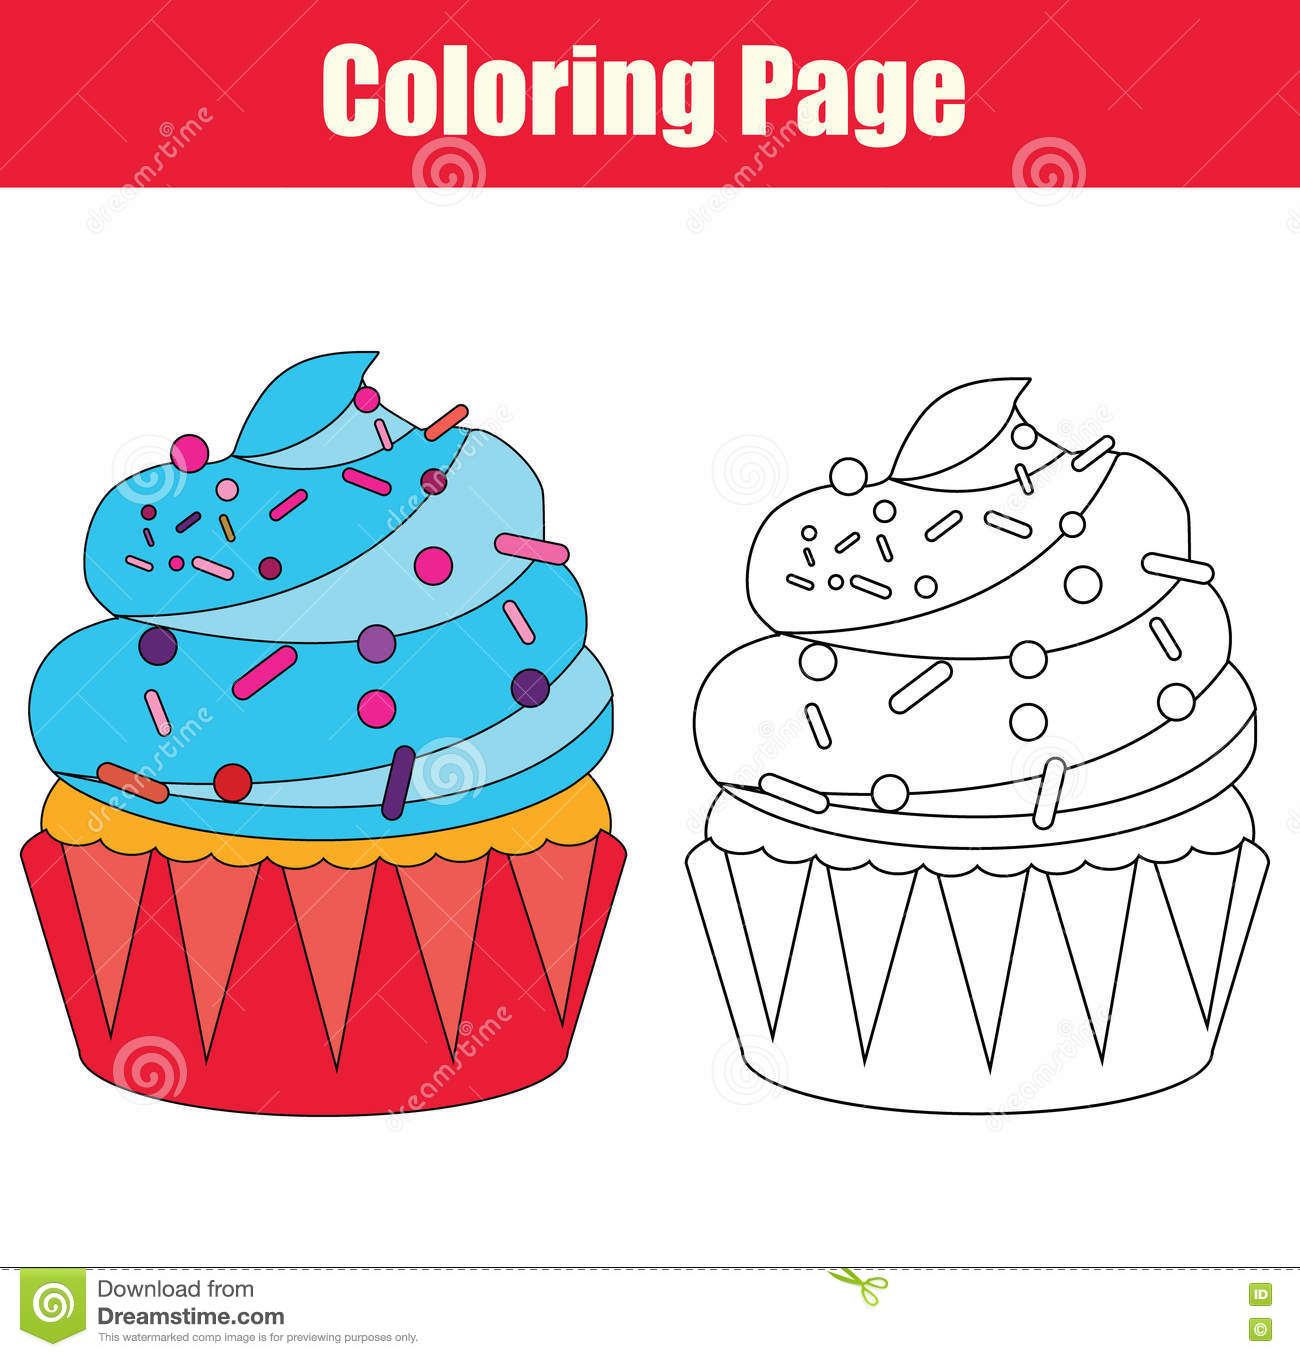 cupcake coloring page stock illustrations u2013 117 cupcake coloring